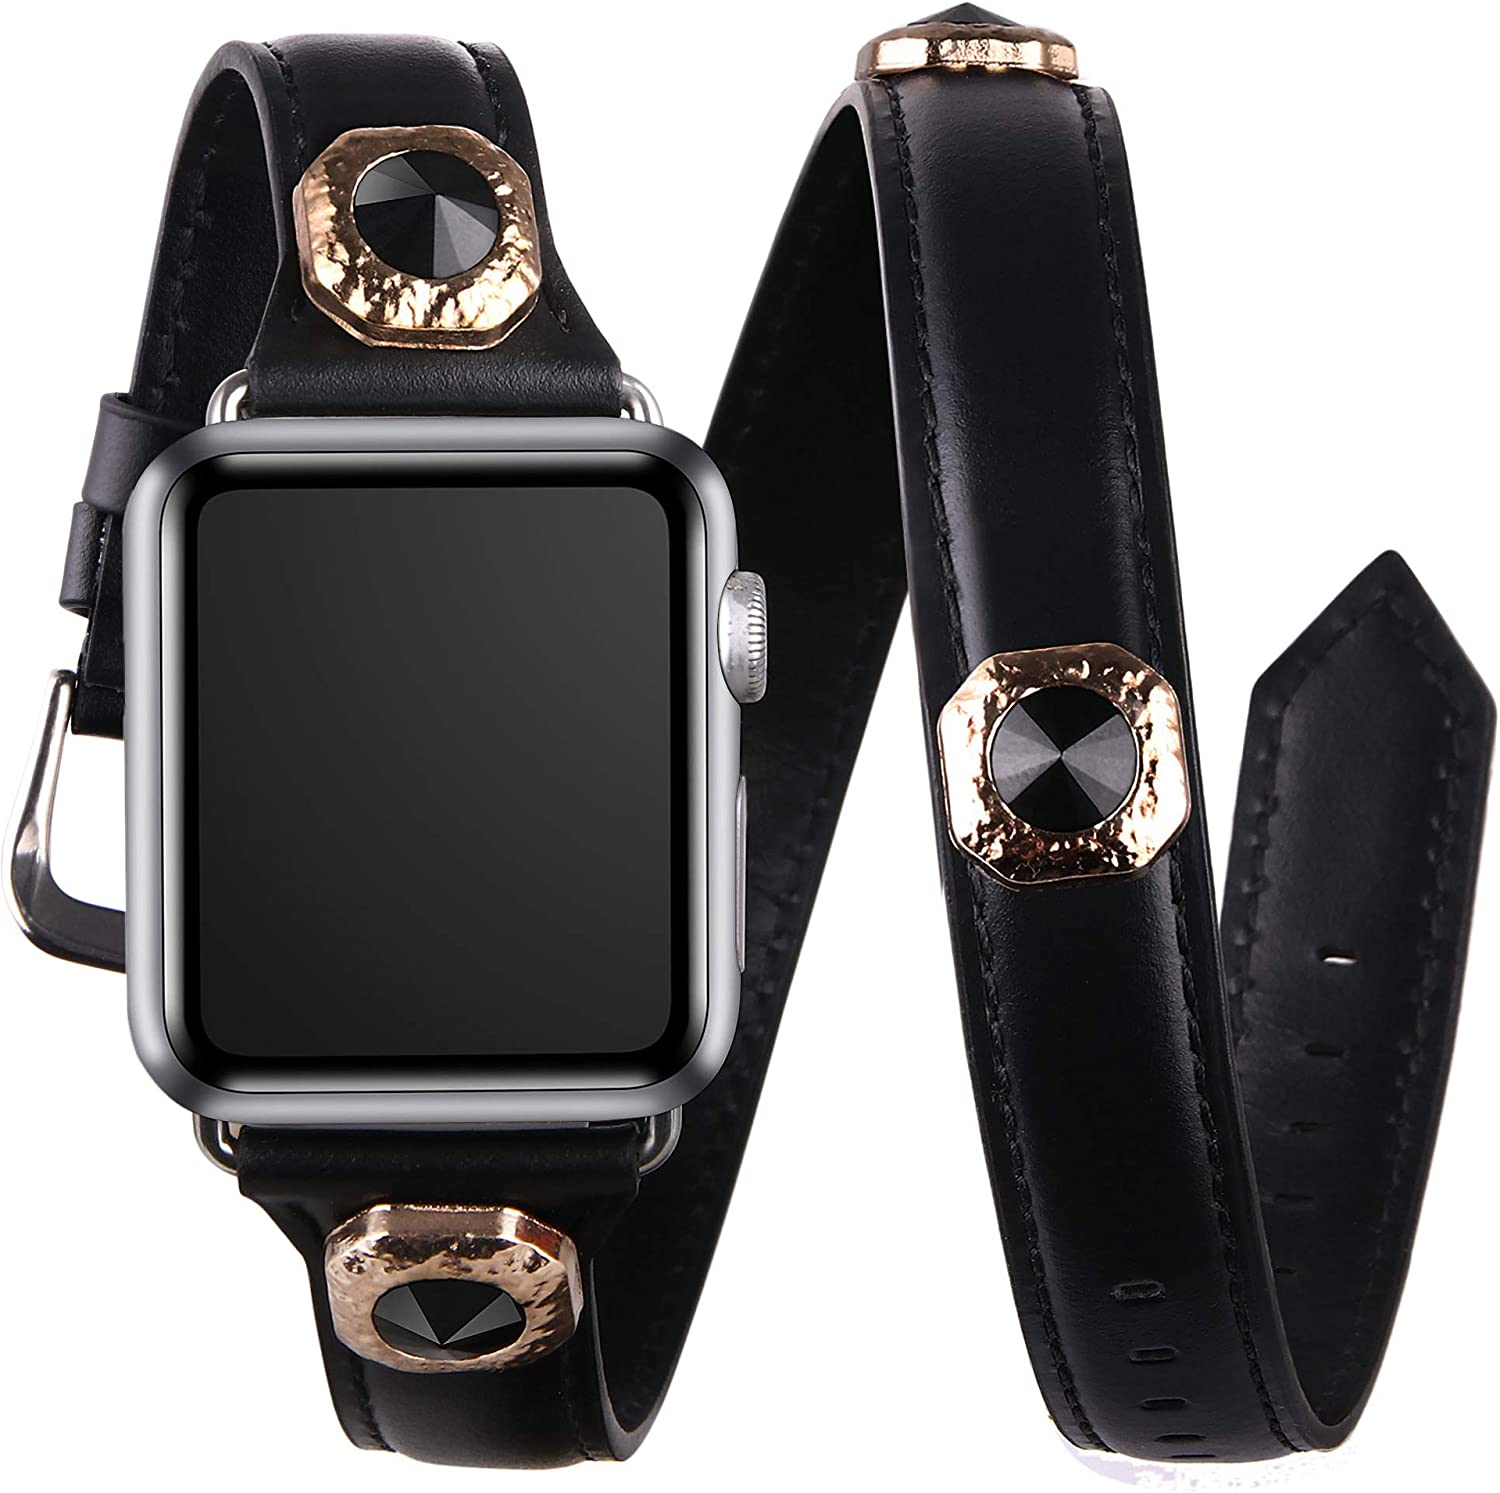 vikoros Leather Double Wrap Bands Compatible with Apple Watch 38mm 40mm 42mm 44mm iWatch SE Series 6/5/4/3/2/1, Bling Studs Leather Double Tour Straps Bracelet Wristband for Women Girls